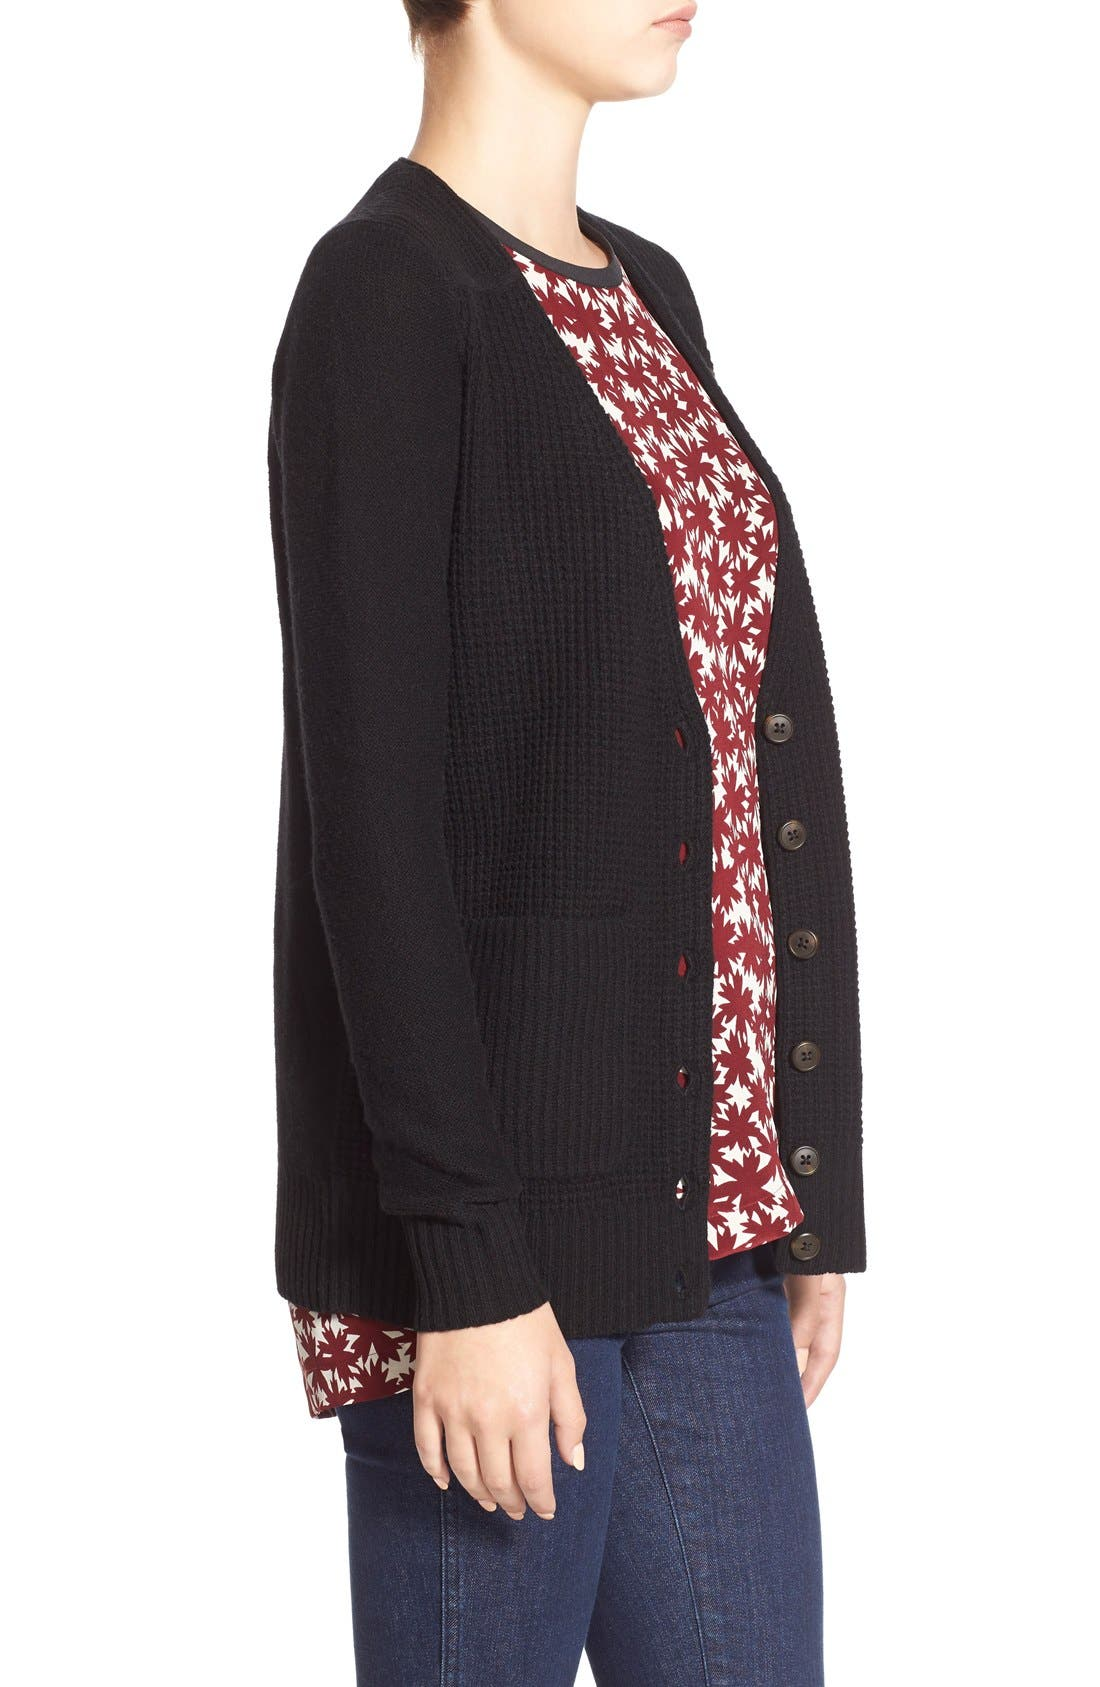 MADEWELL,                             'University' Cardigan,                             Alternate thumbnail 5, color,                             001